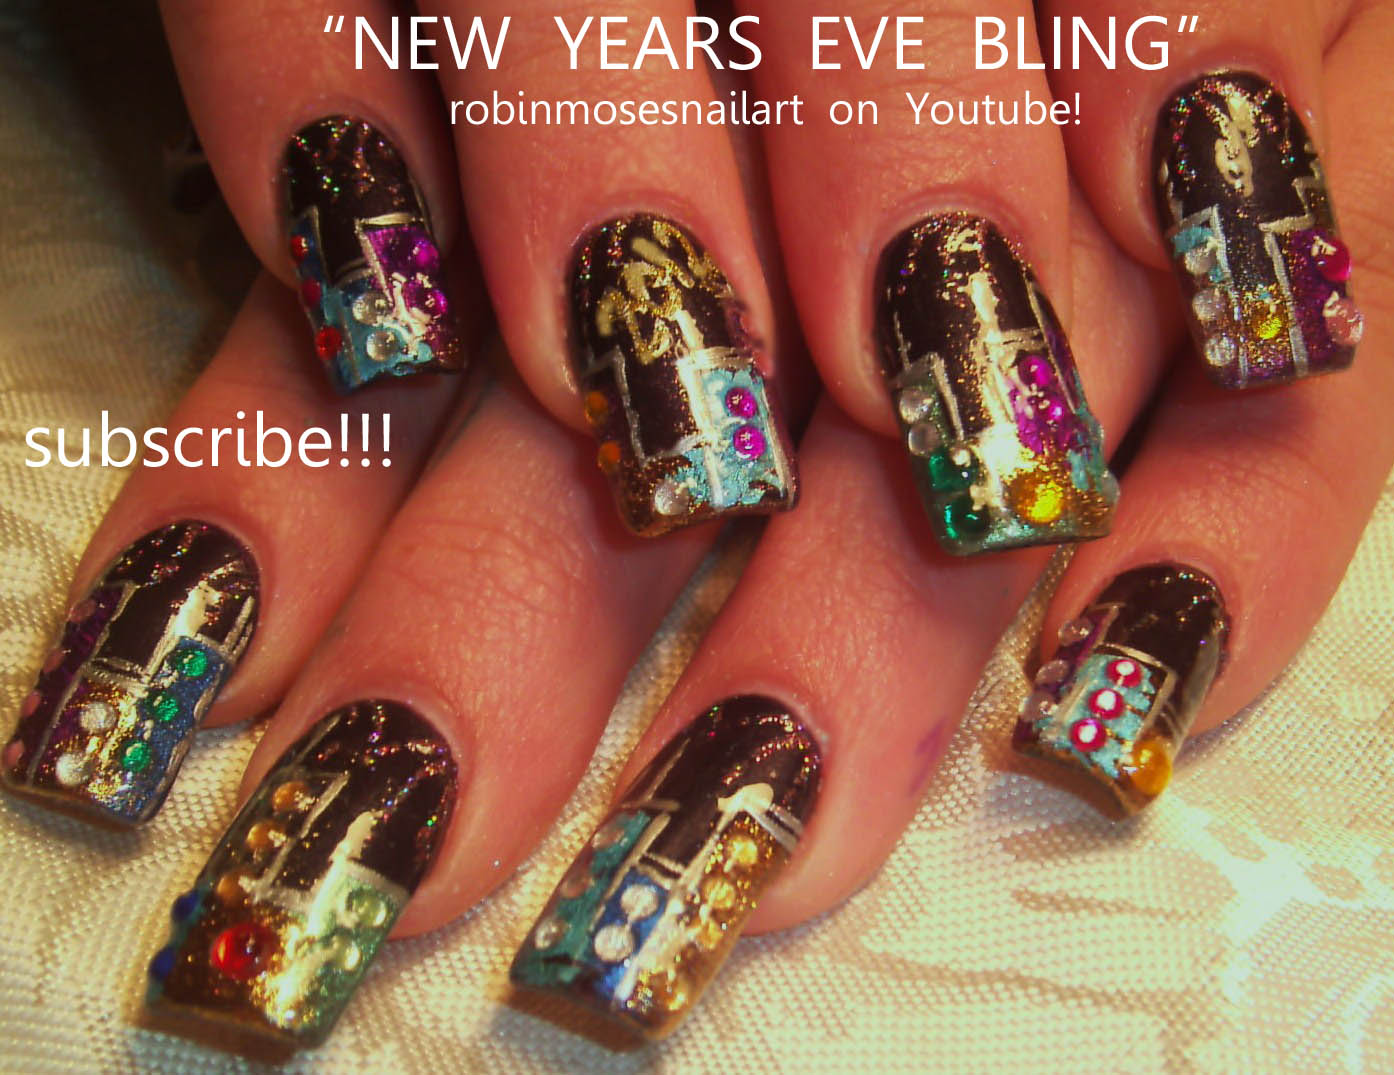 Robin moses nail art new york nails new year 2012 new year new york nails new year 2012 new year nails easy new year nails fashion trends 2012 essie dive bar polish nyc chinatown nyc new years nails prinsesfo Image collections